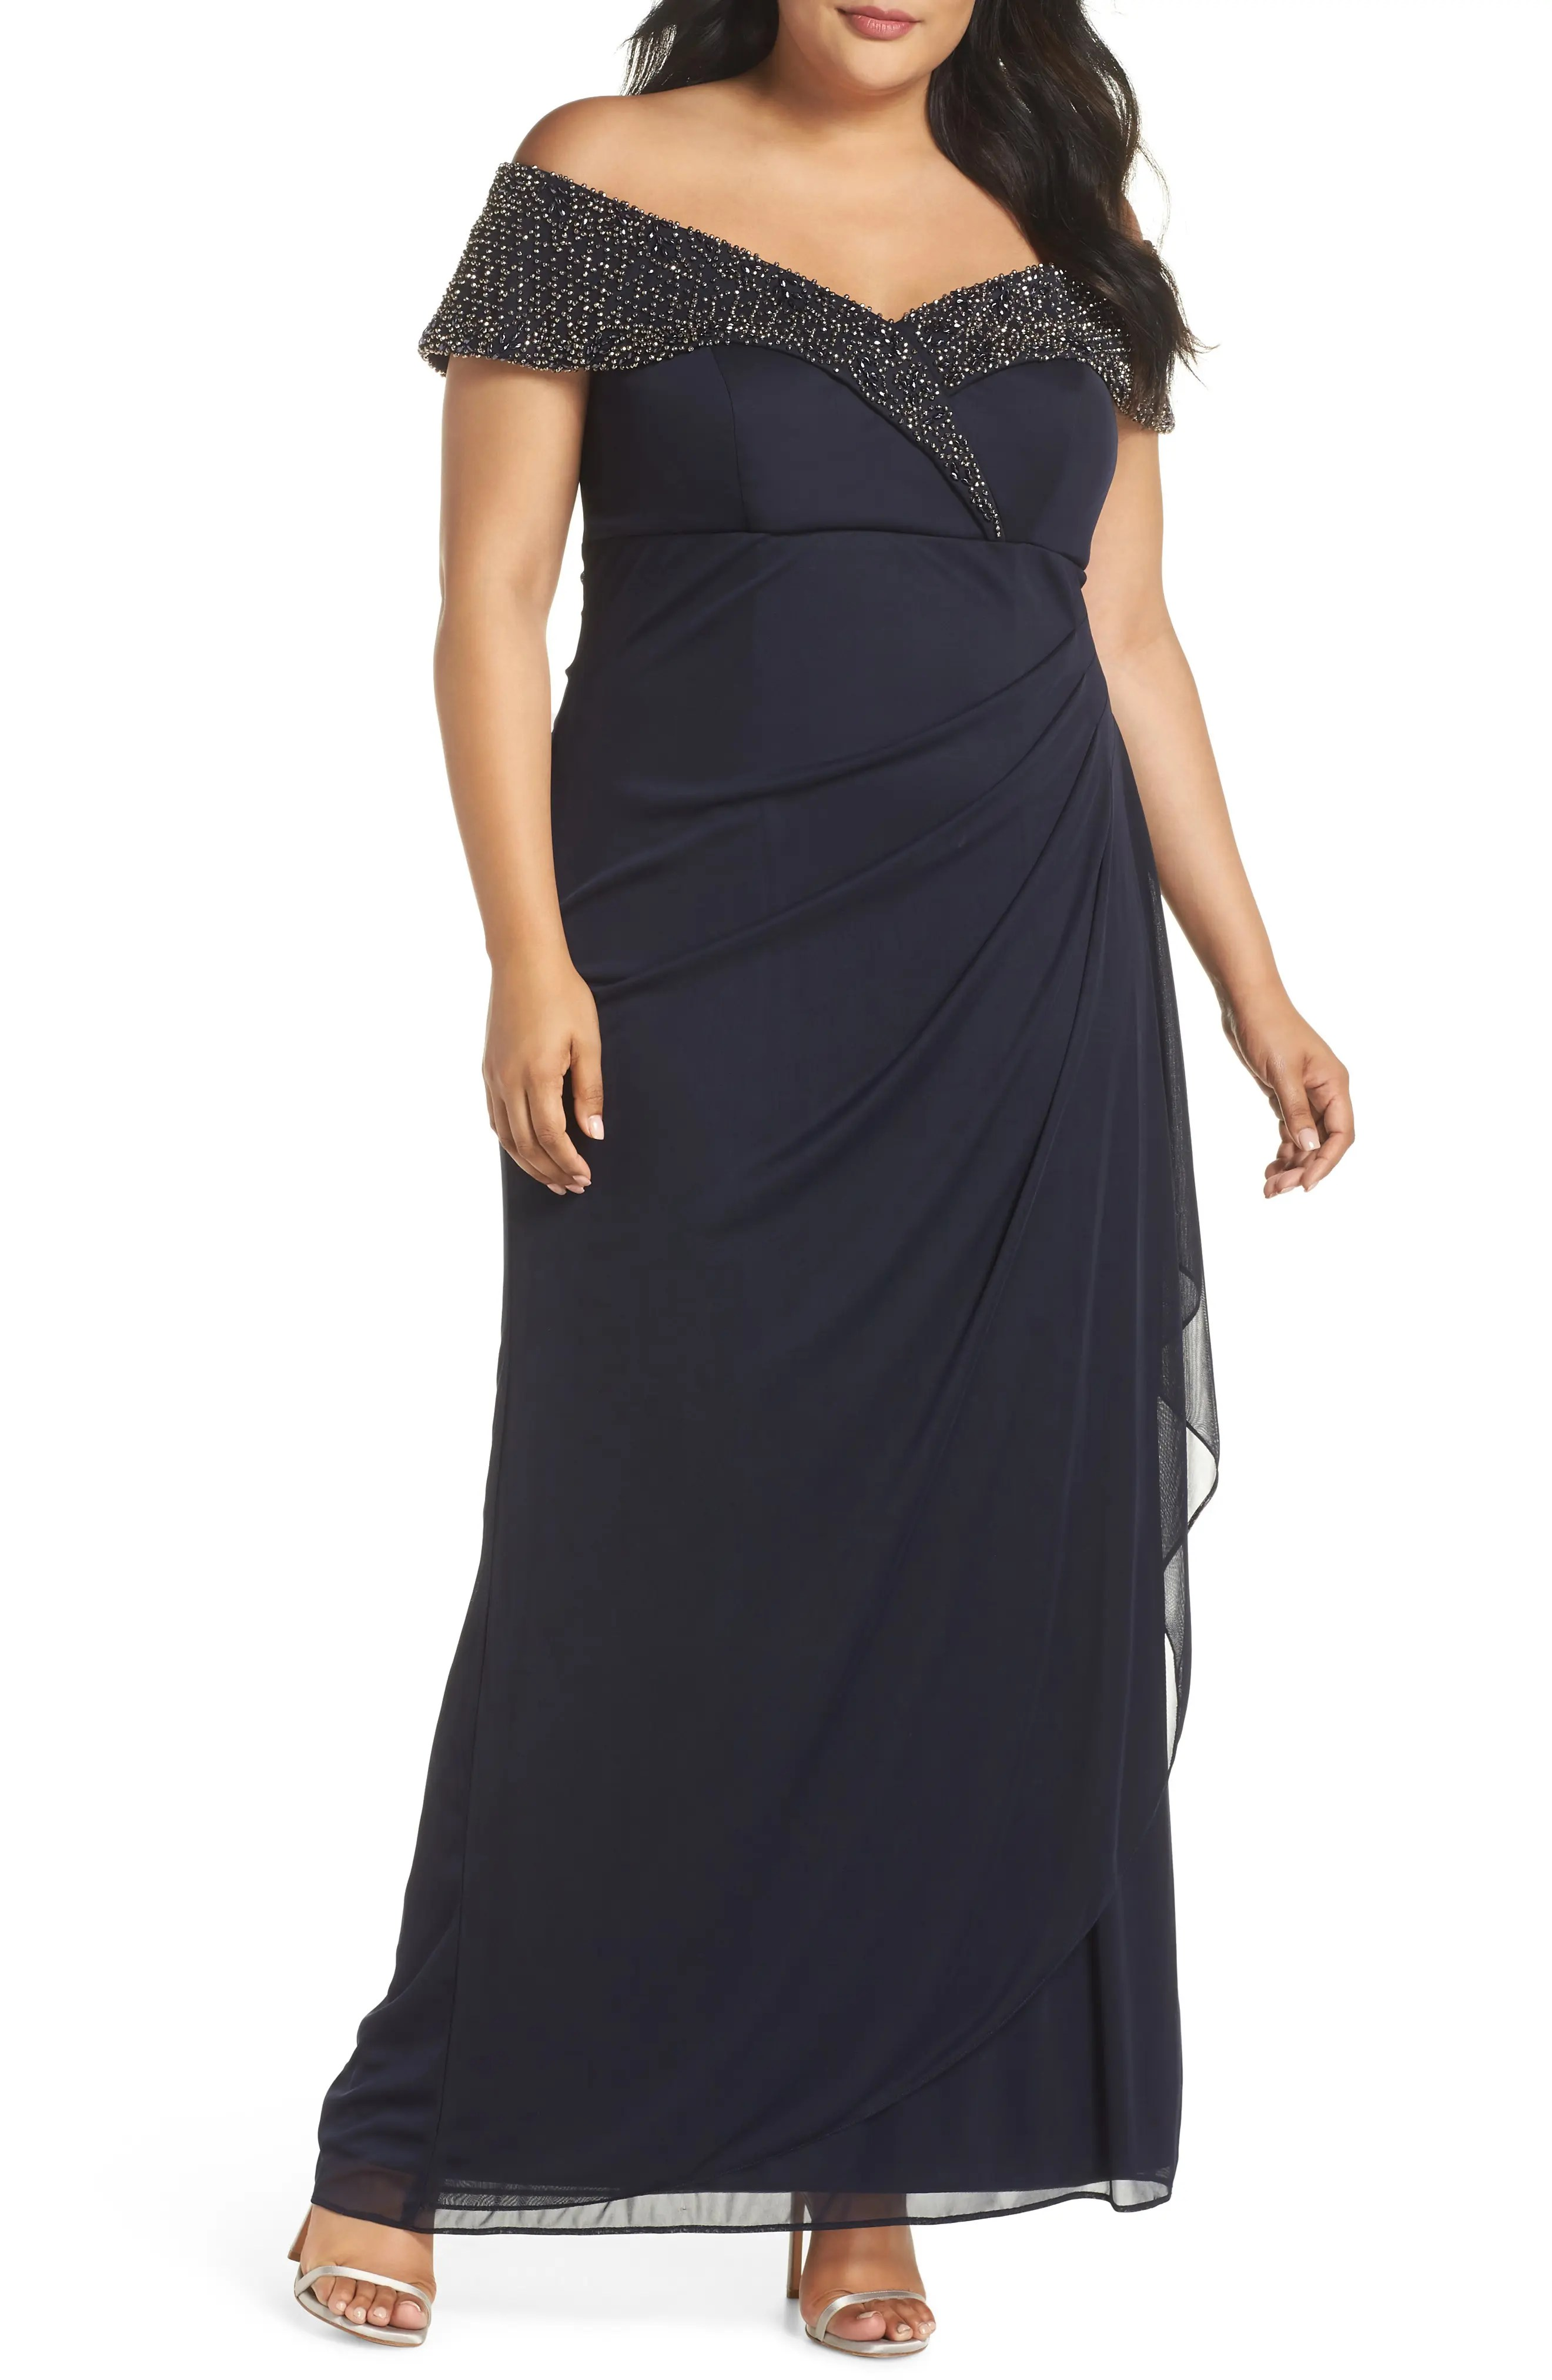 Xscape Women s Clothing   Nordstrom Xscape Beaded Off the Shoulder Gown  Plus Size